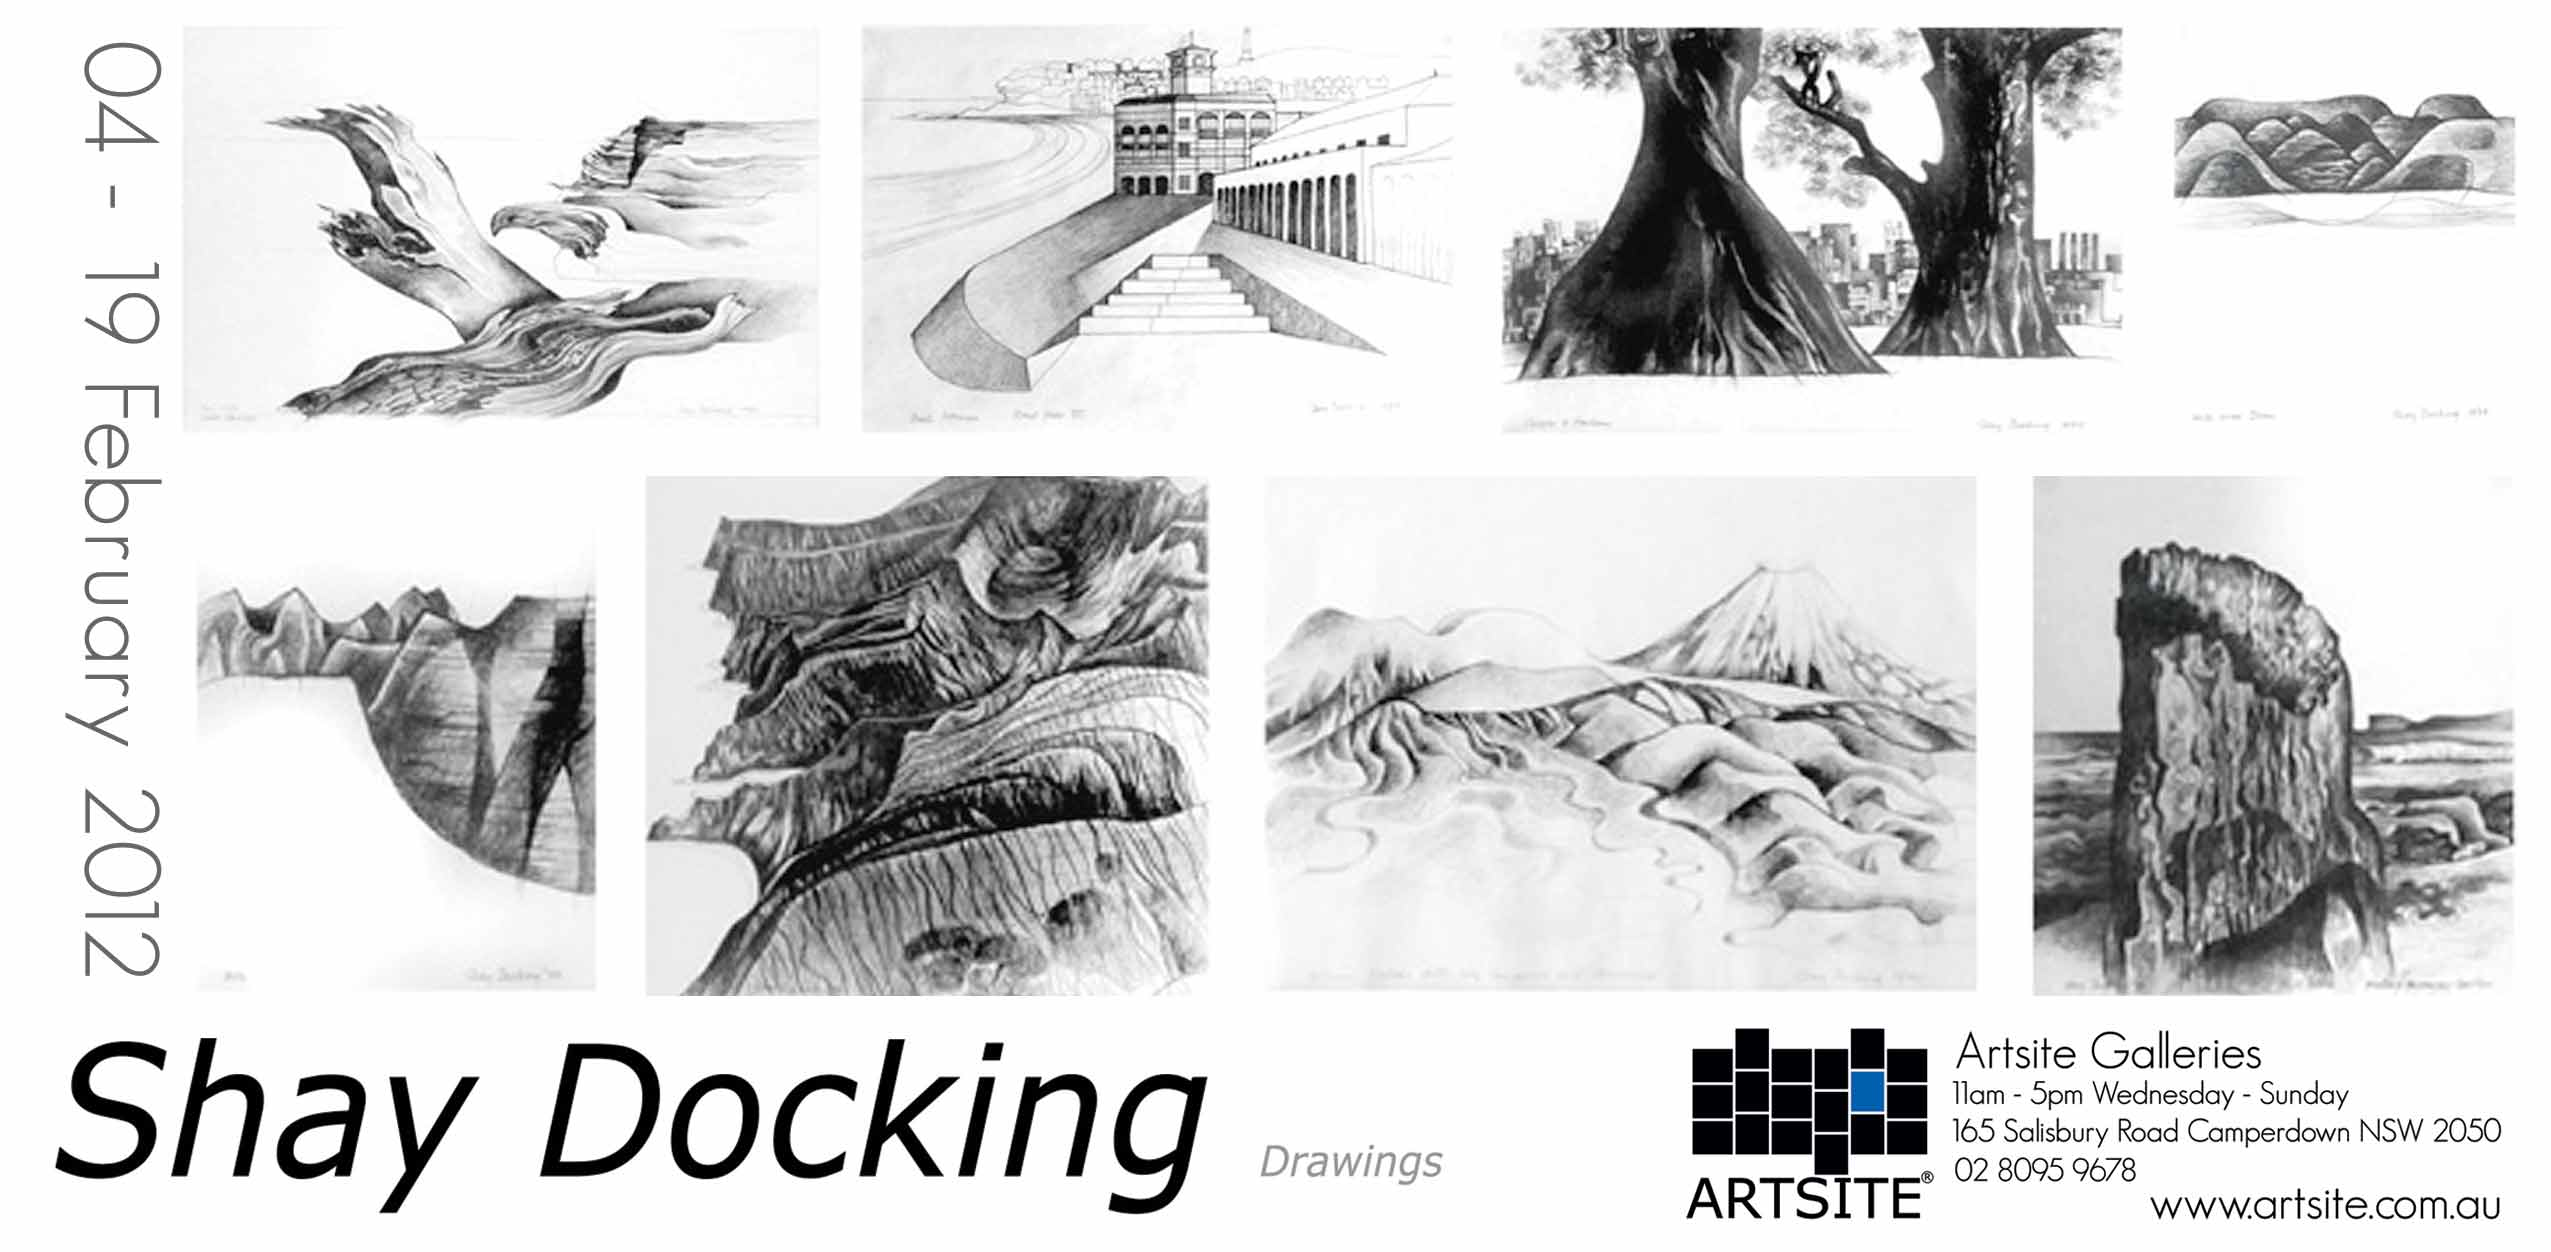 View Exhibition at Artsite Gallery, Sydney: 04 - 19 February 2012: Shay Docking (1928-1998) - The Drawings